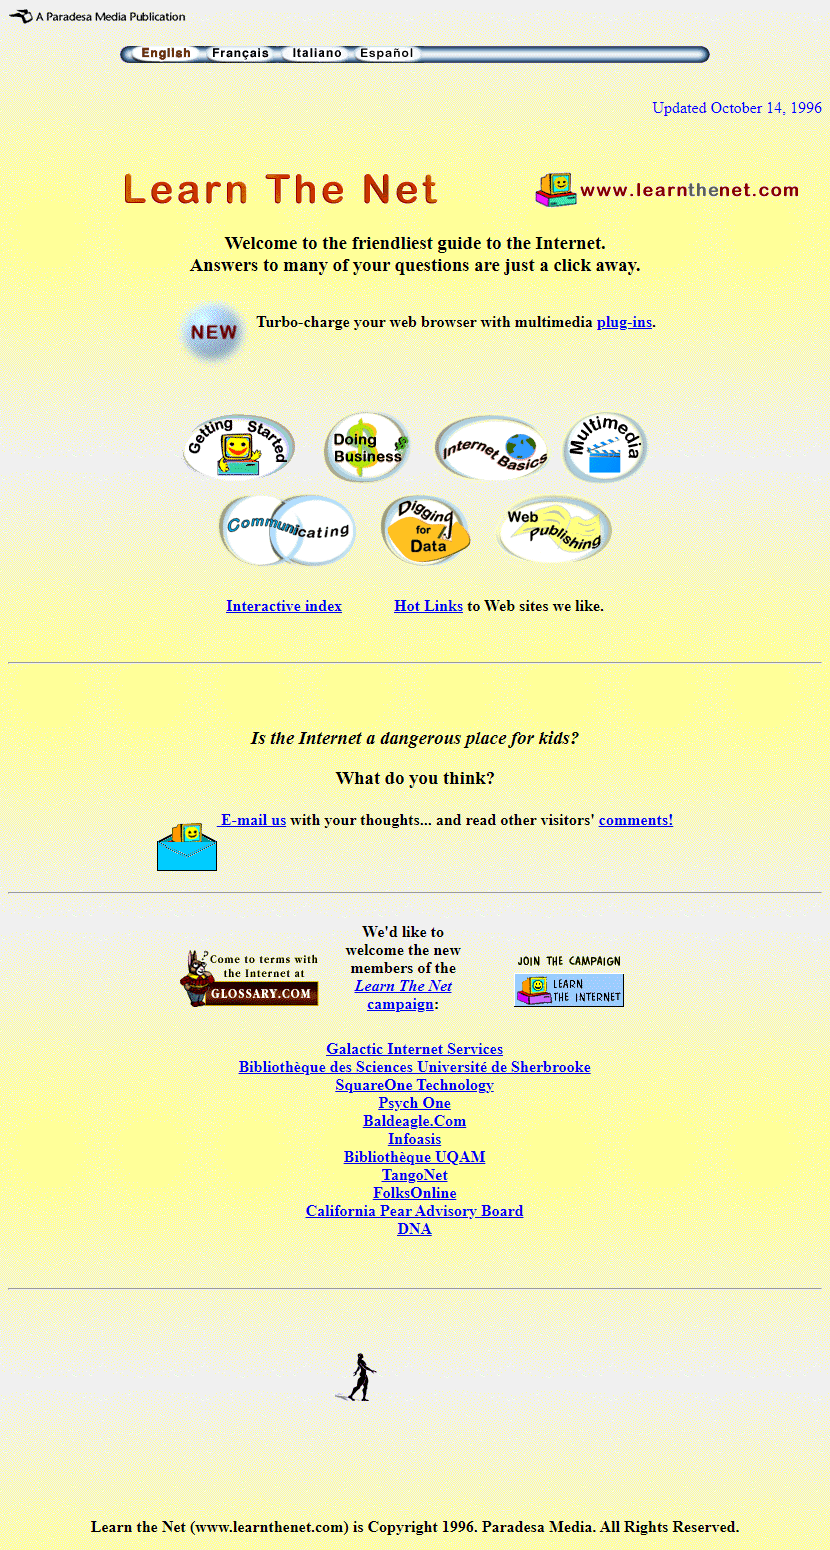 Learn the Net in 1996